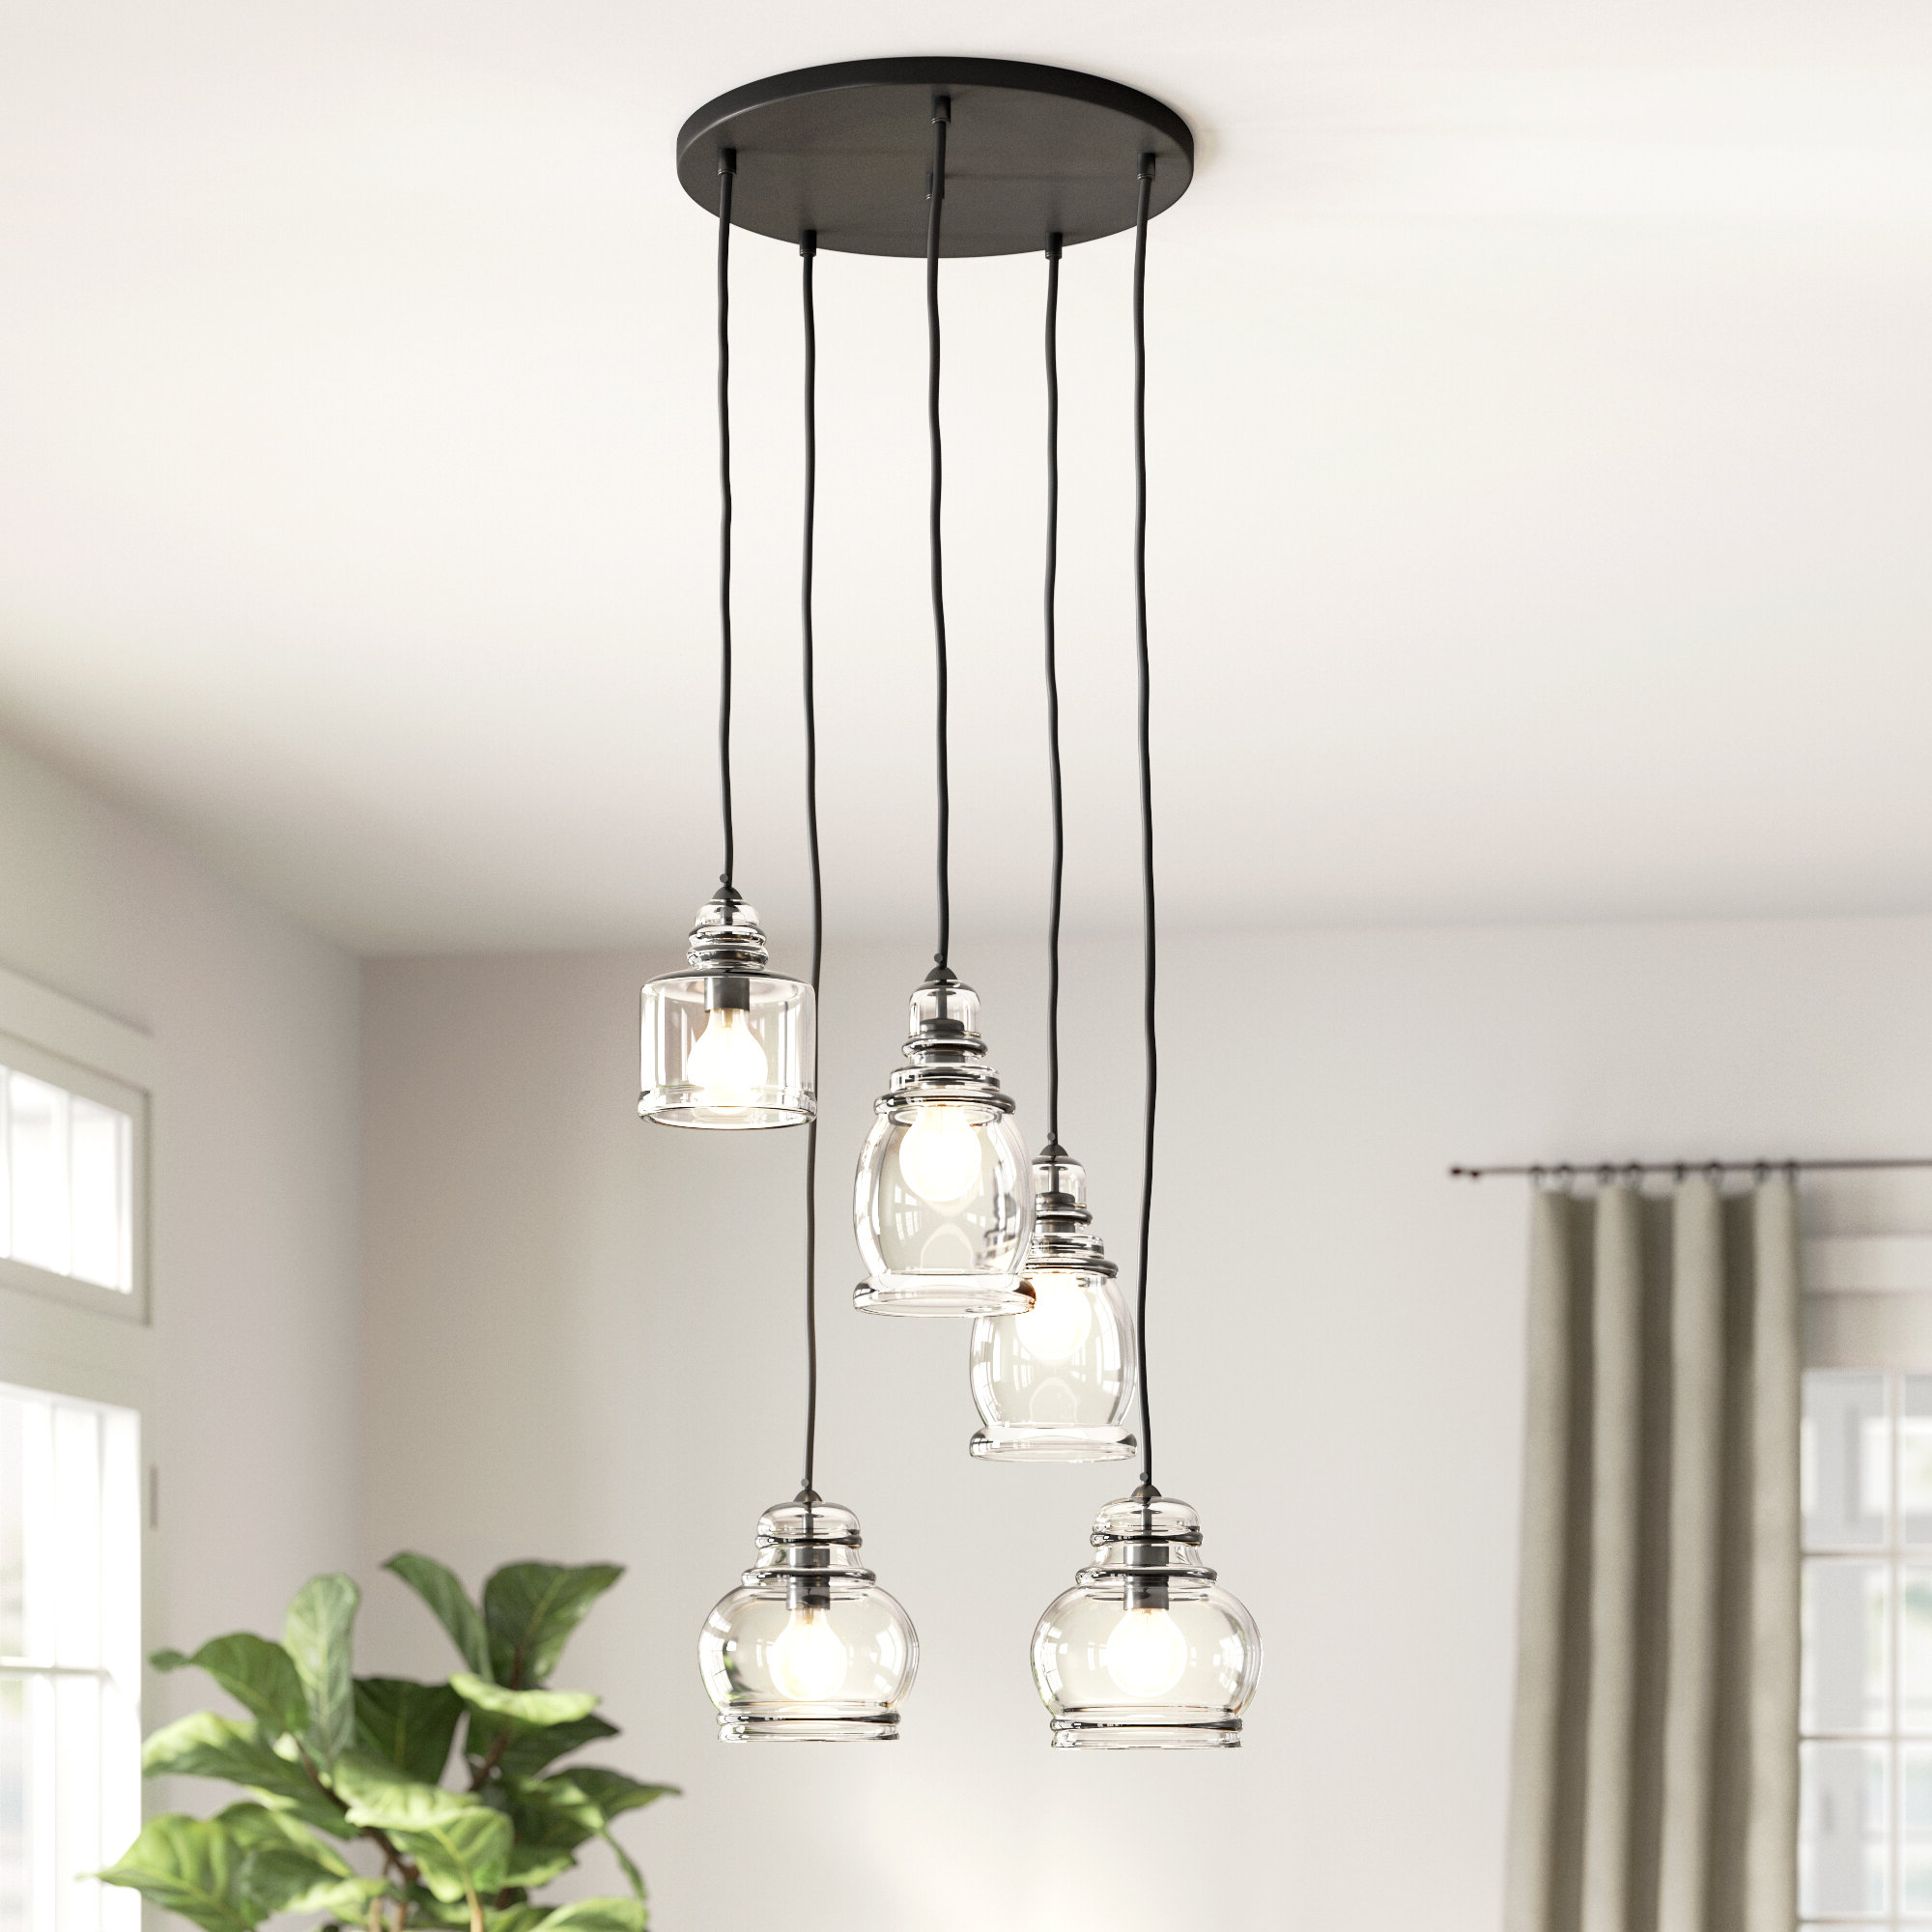 Most Popular 5 Light Cluster Bell Pendant With Ariel 2 Light Kitchen Island Dome Pendants (View 17 of 25)